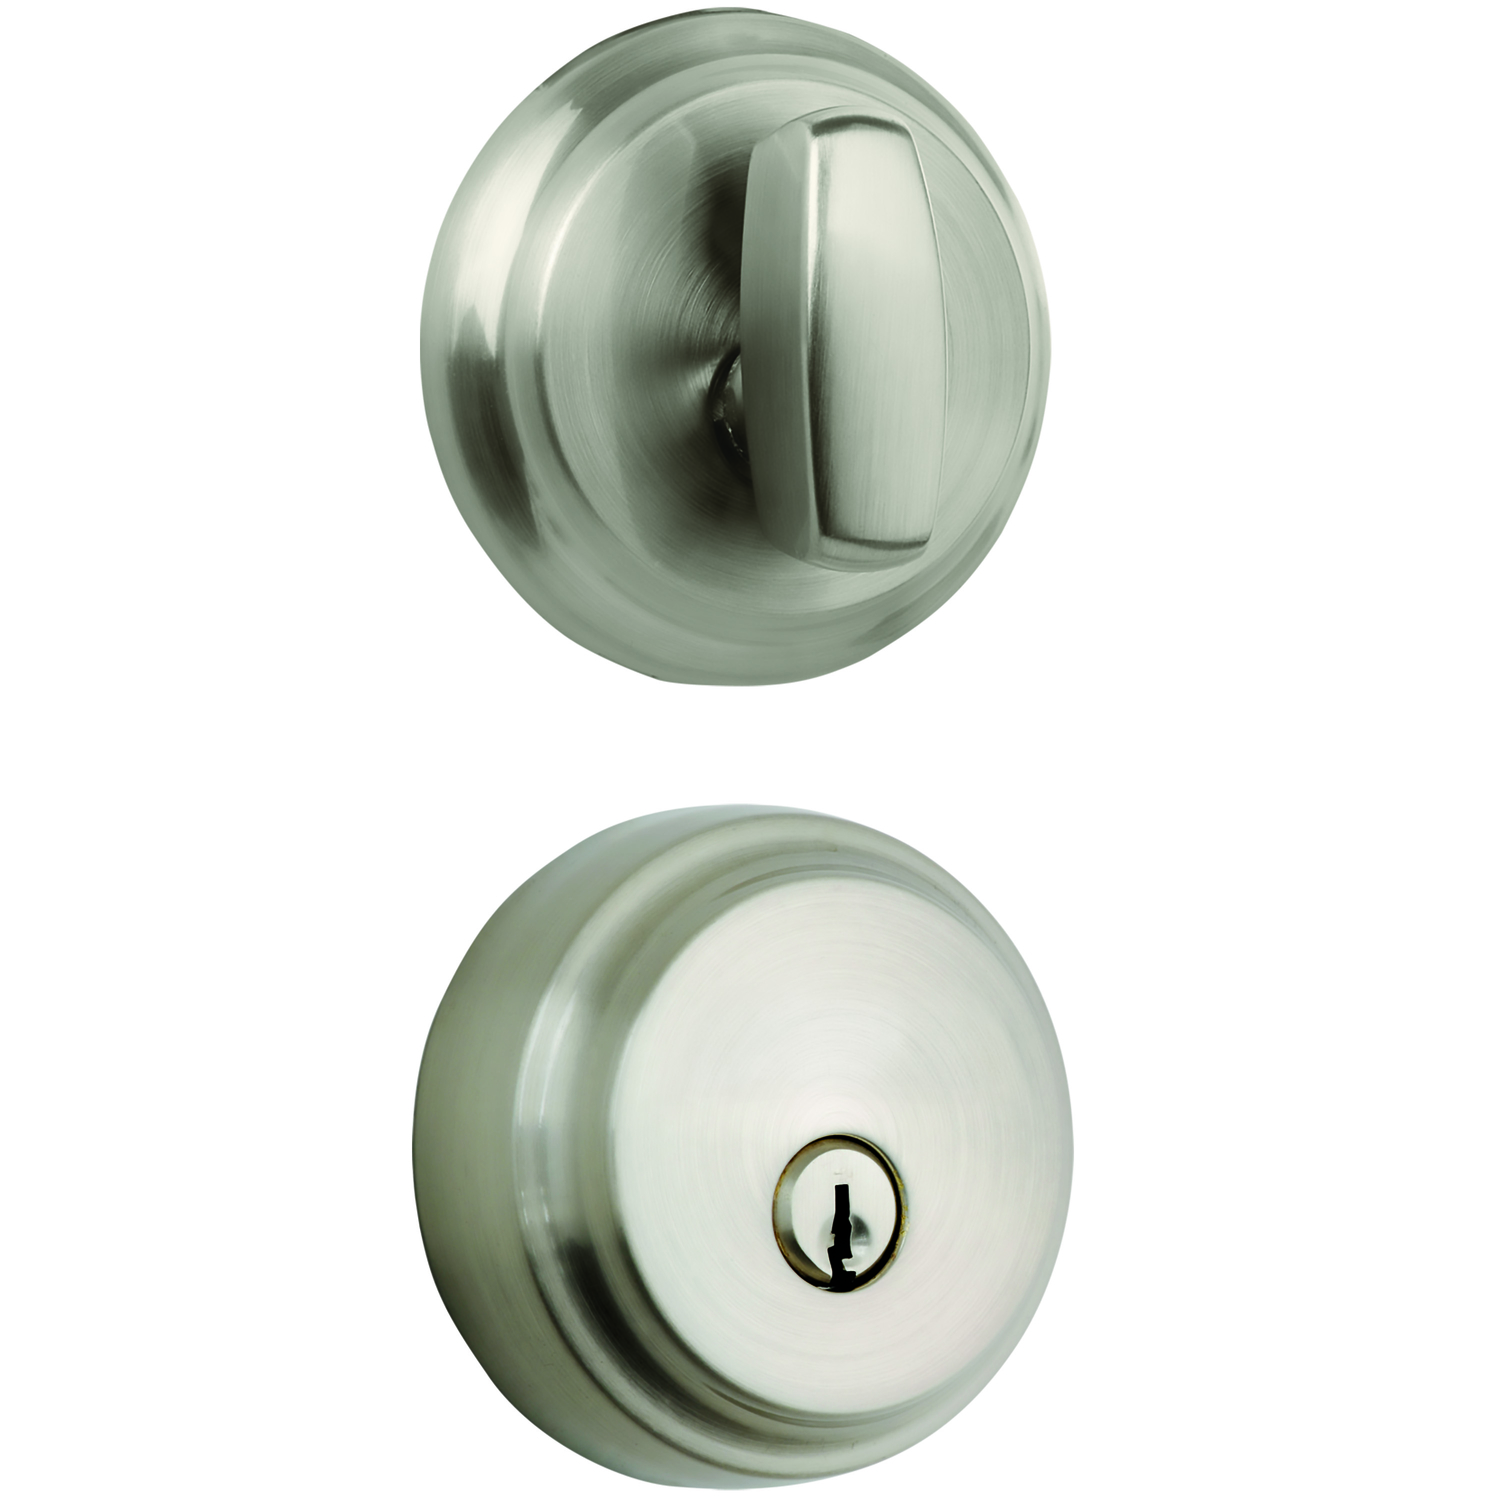 Keyed Deadbolts